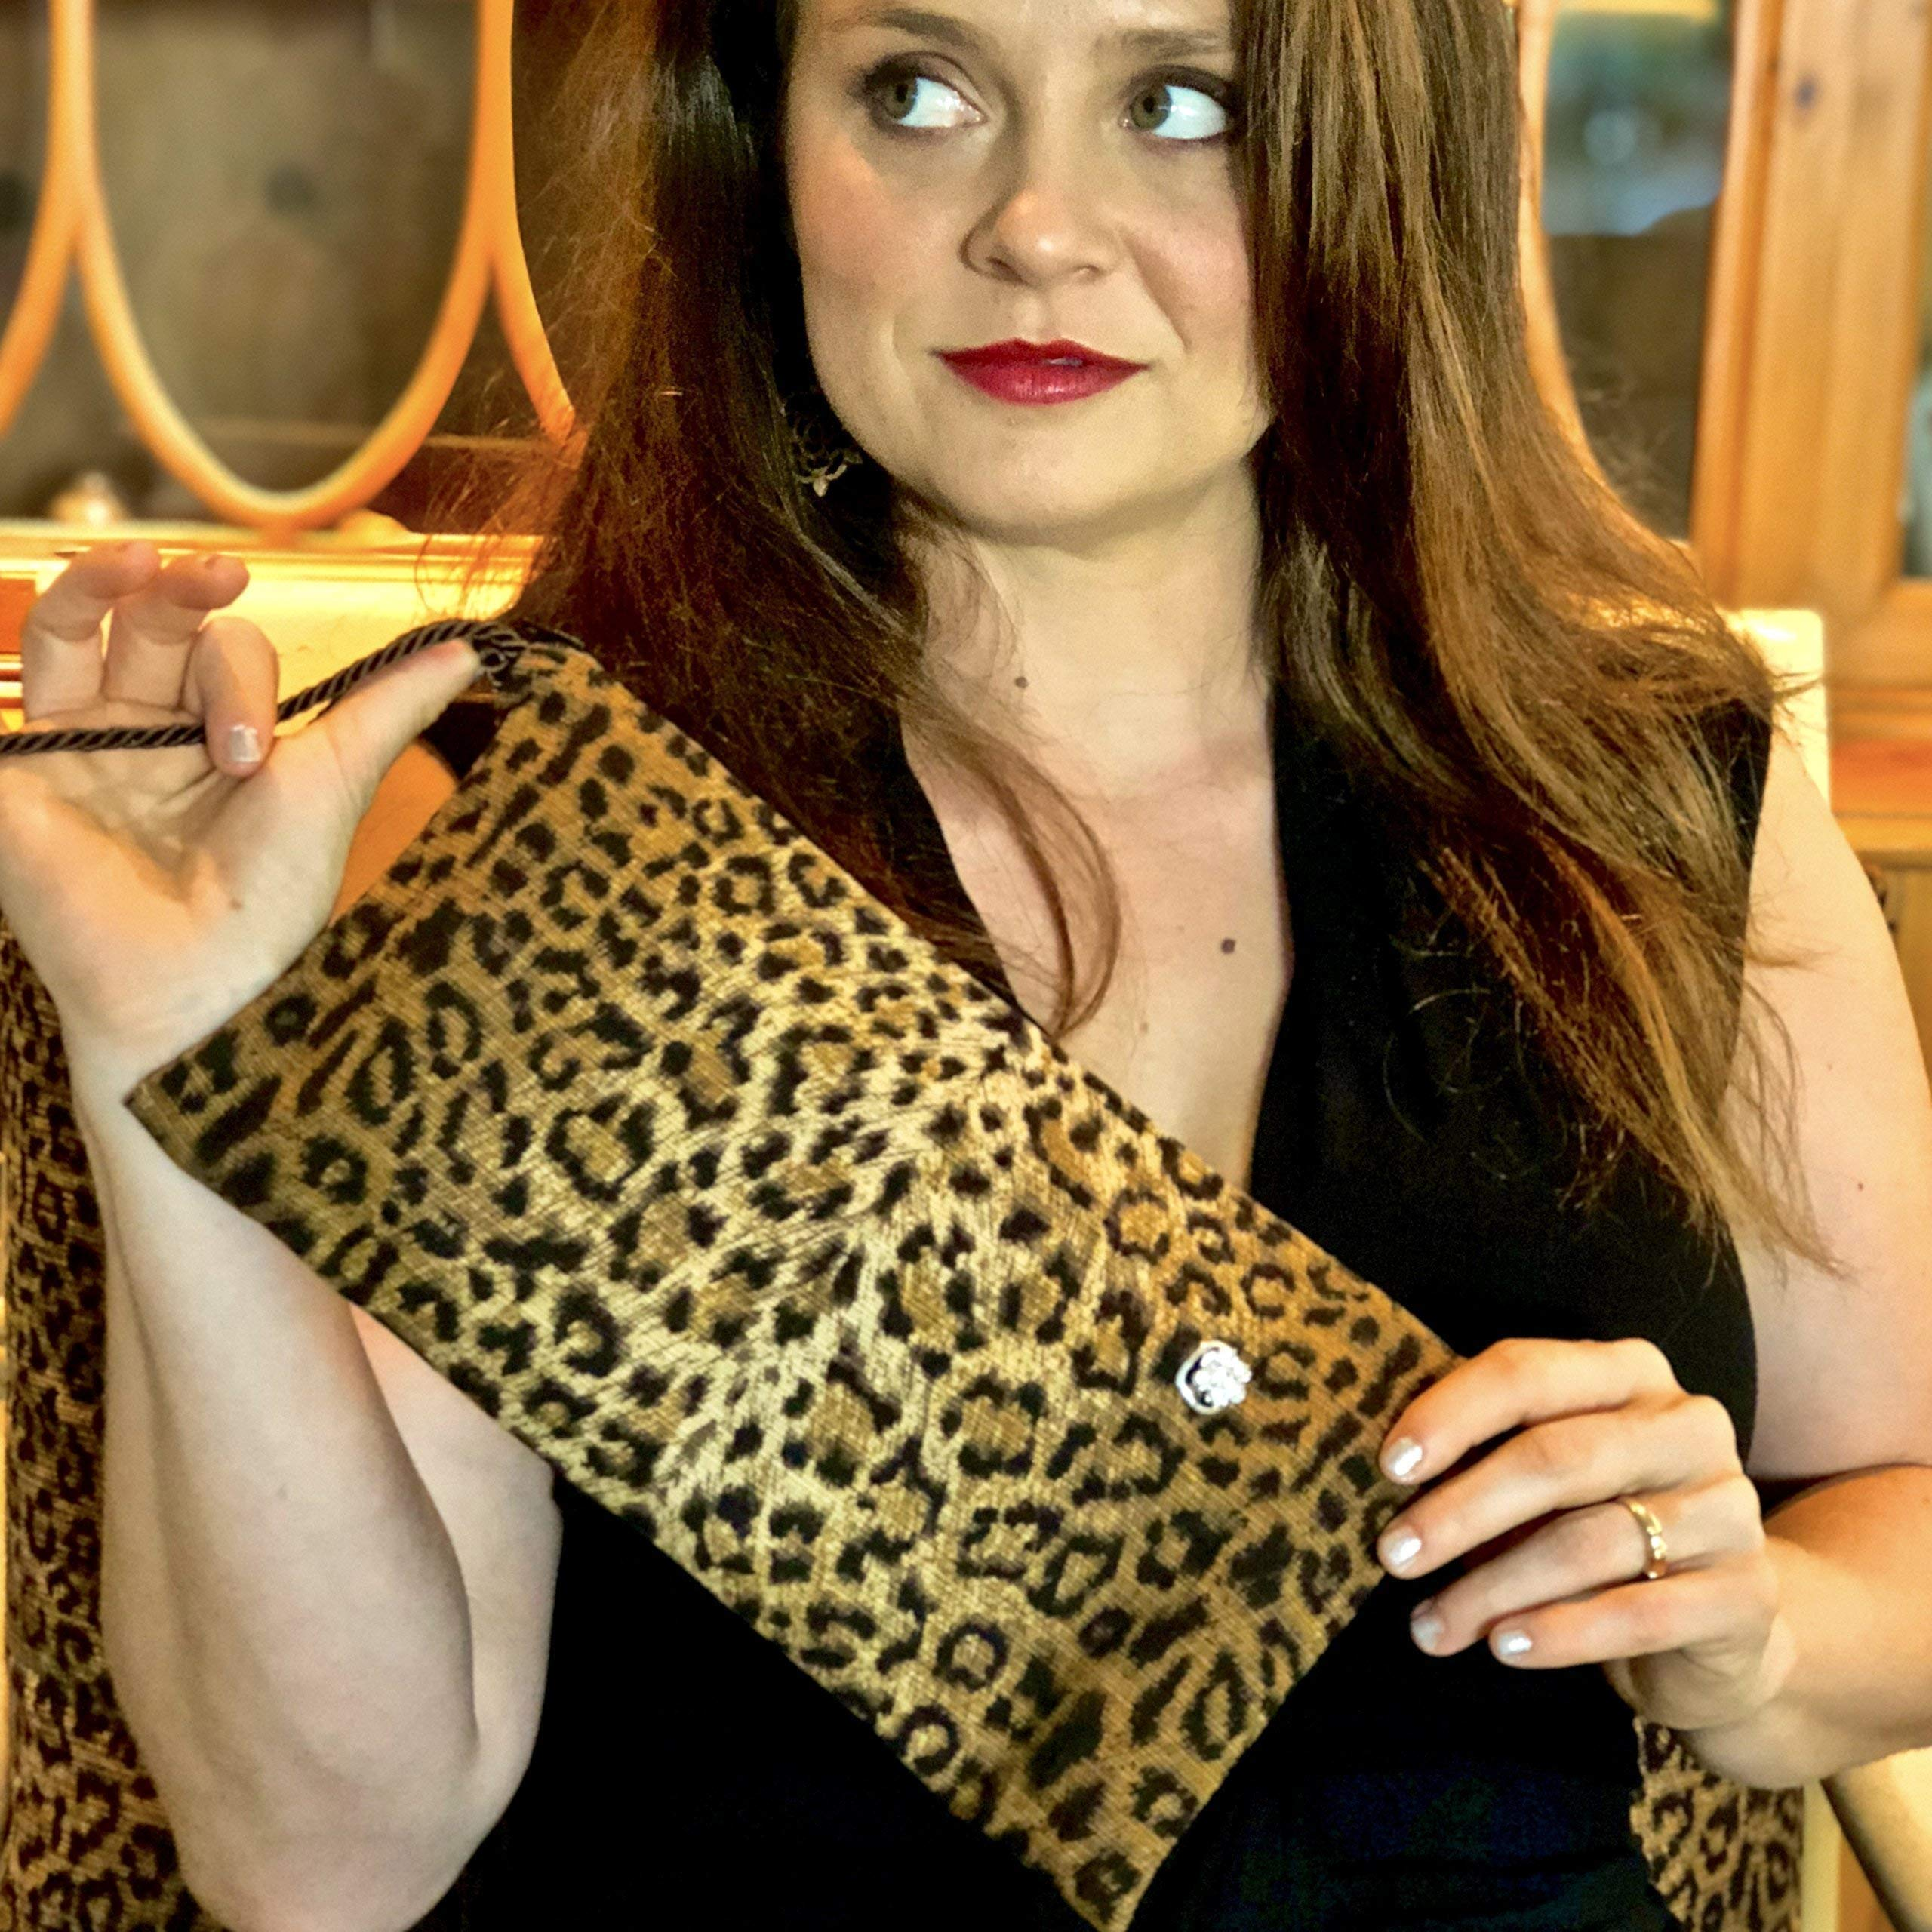 Vegan Leopard Clutch - NO RULES COLLECTION by Palm Beach Purses